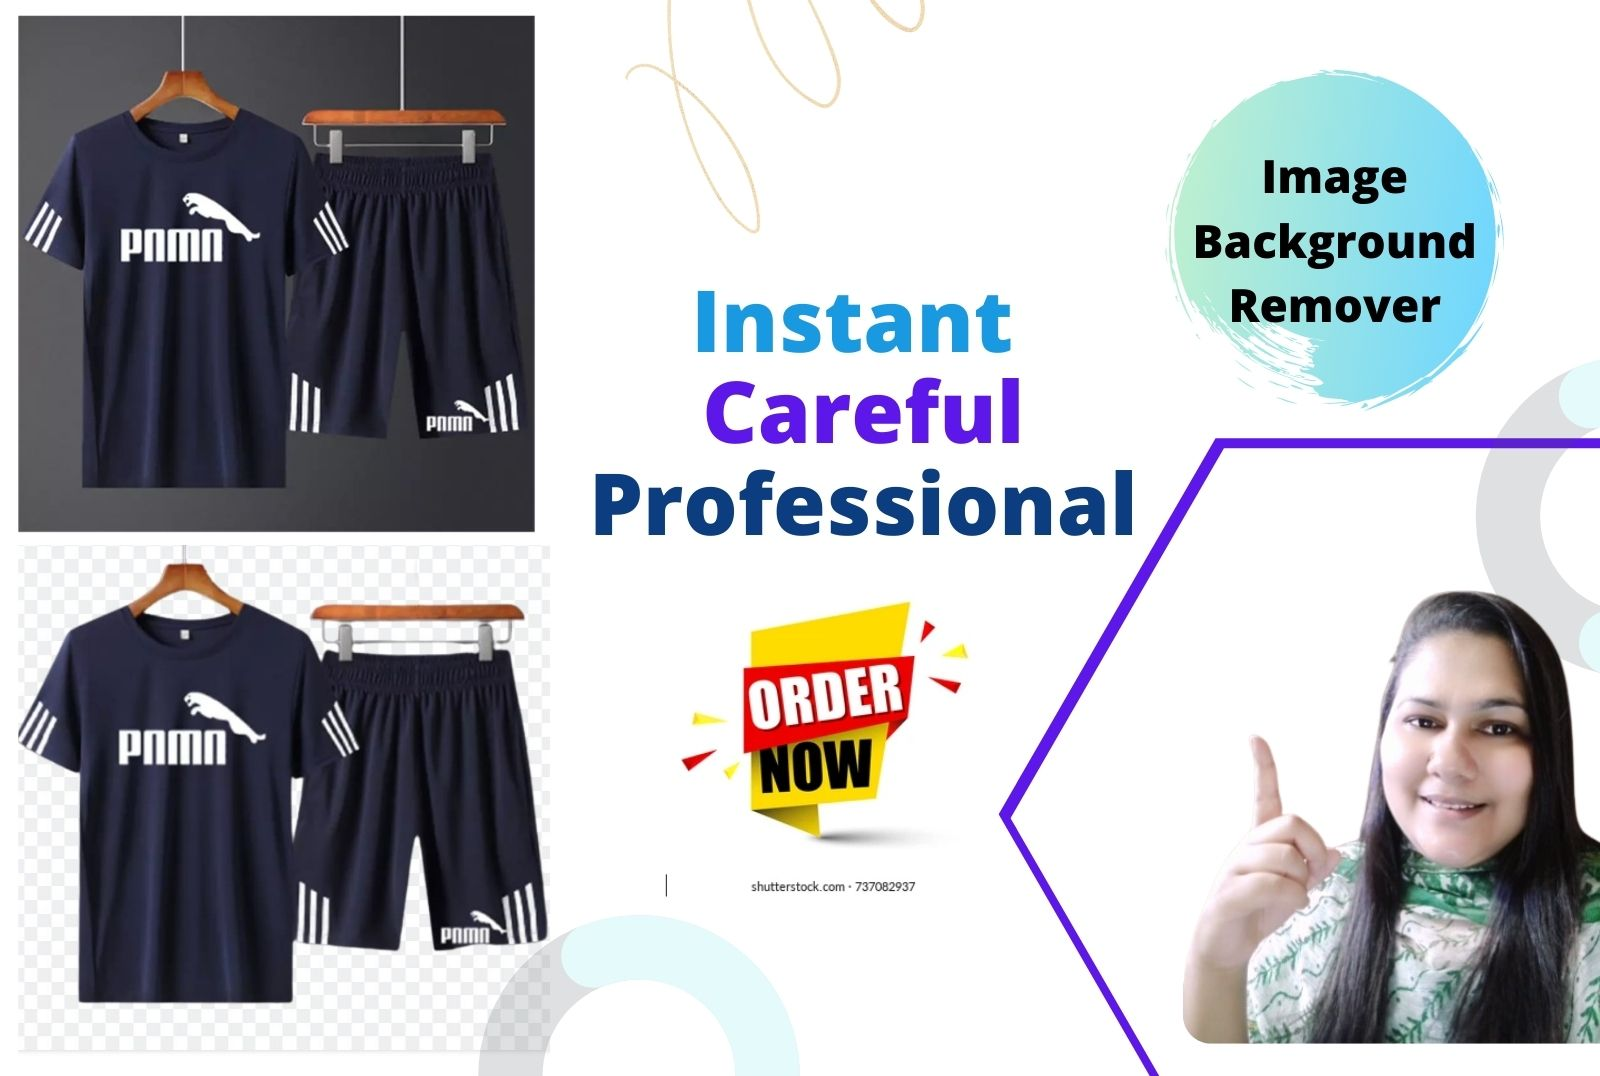 I will remove background up to 50 image manually